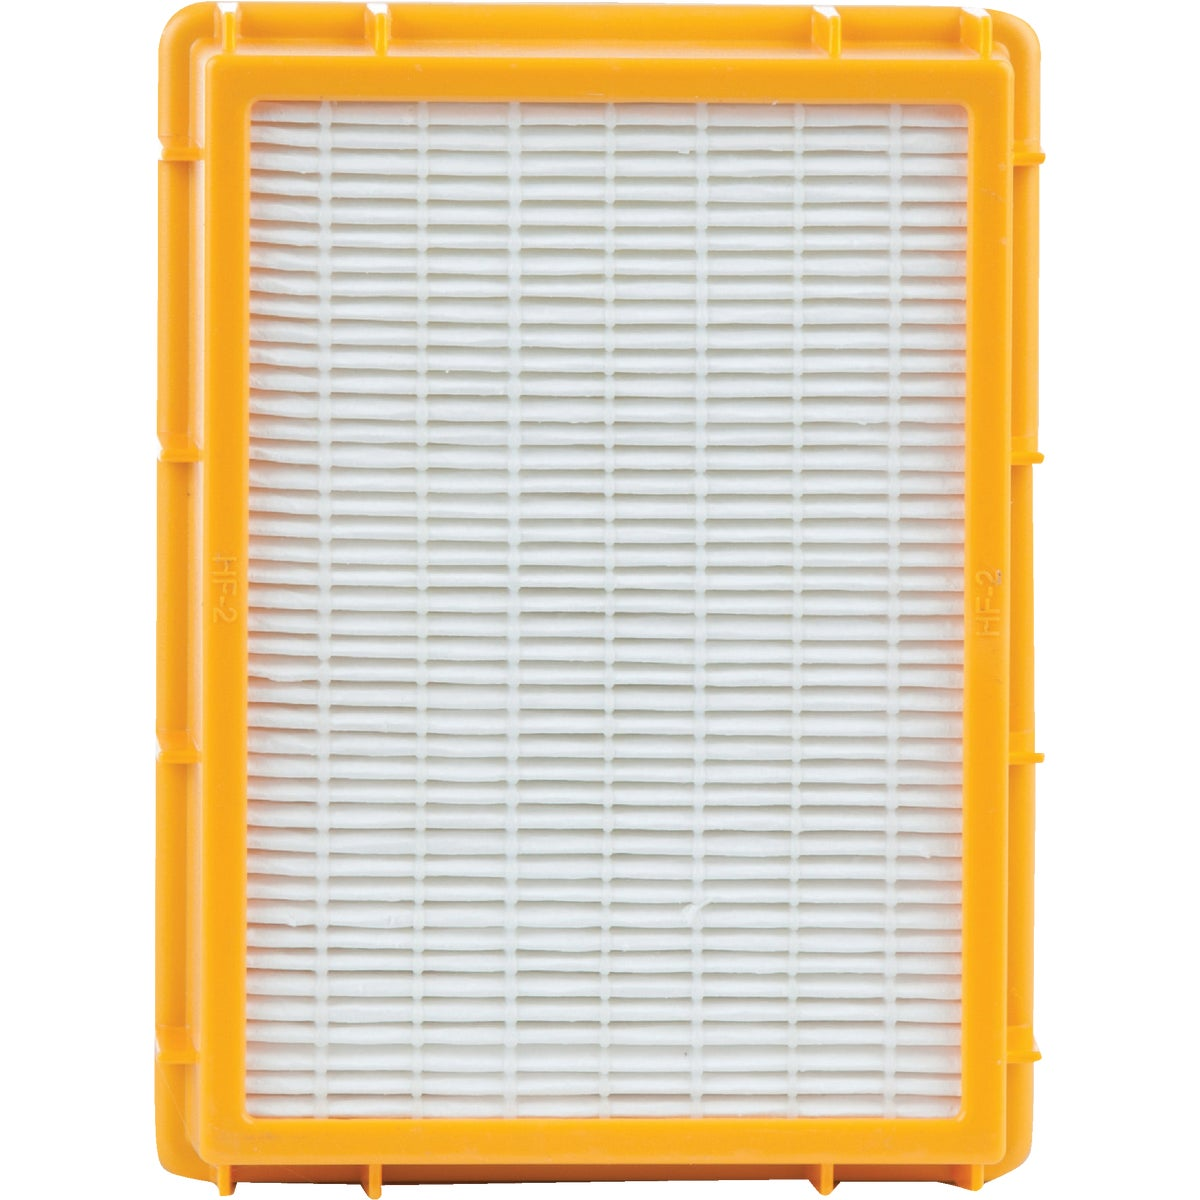 TYPE HF2 HEPA VAC FILTER - 61111D-2 by Electrolux Home Care